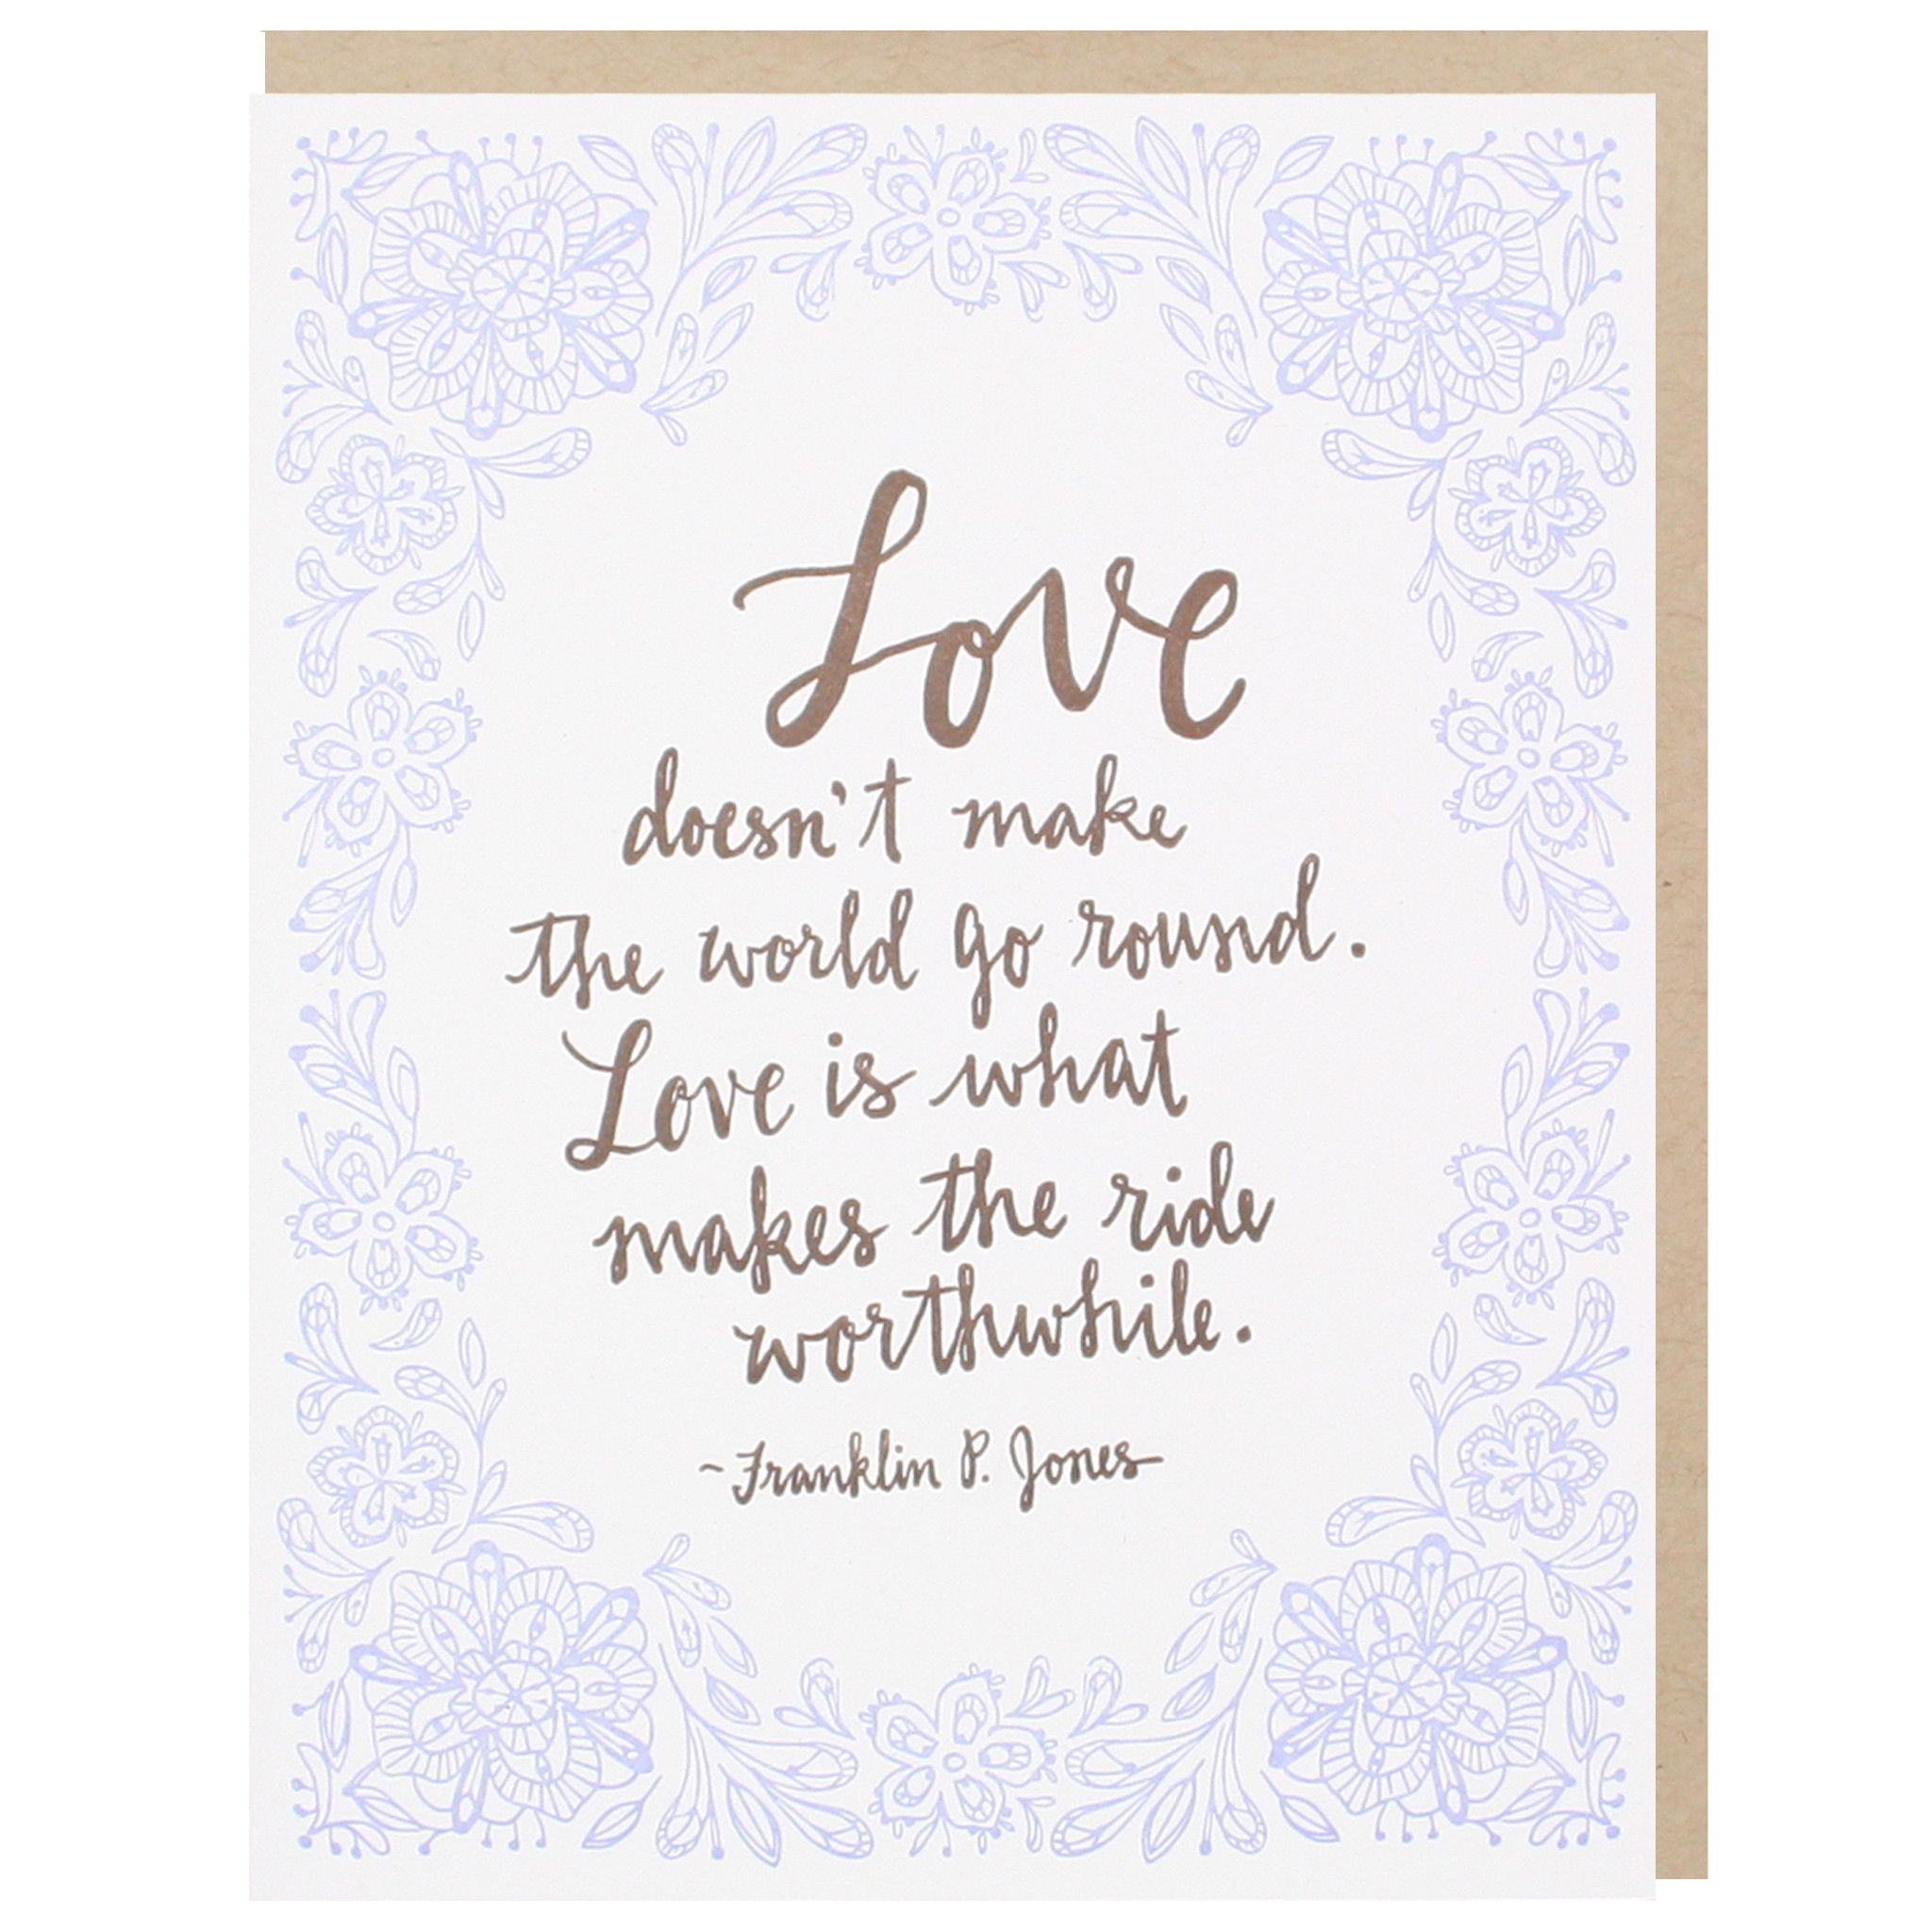 Romantic Love Quote Wedding Card  Wedding card quotes, Love